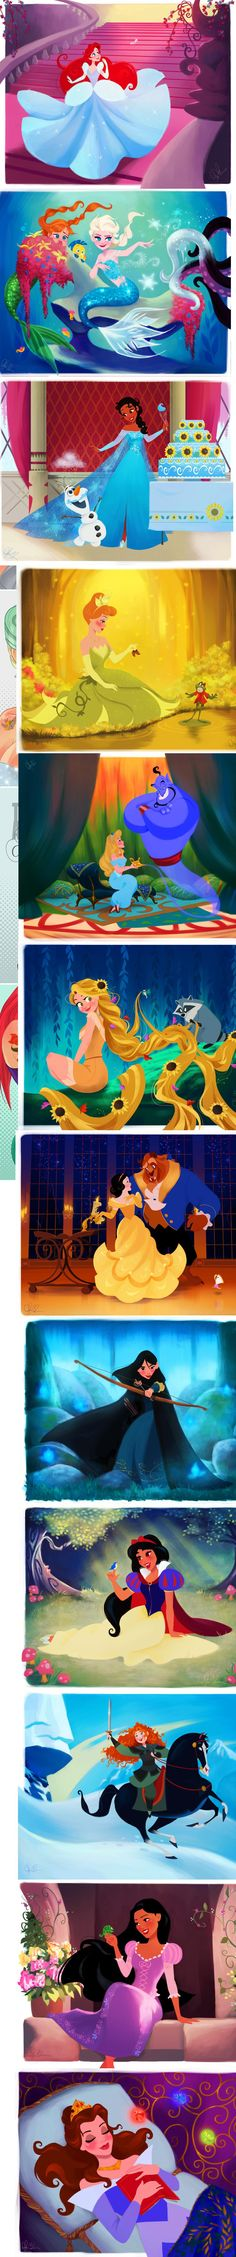 on échange les princesses Disney